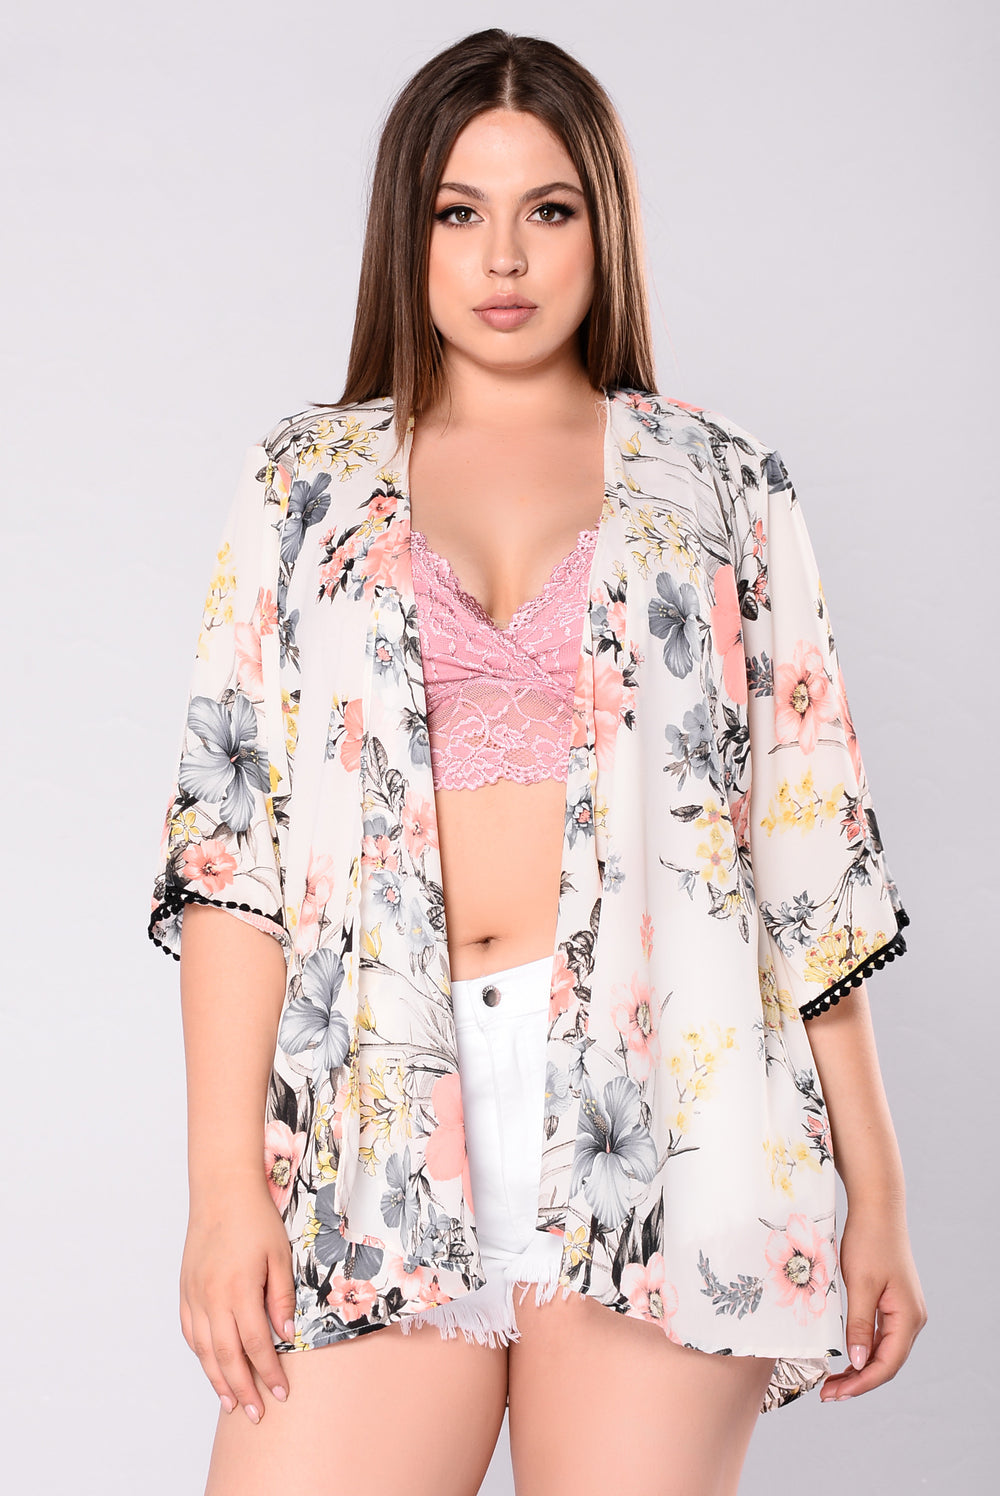 My One And Only Kimono - Ivory Floral